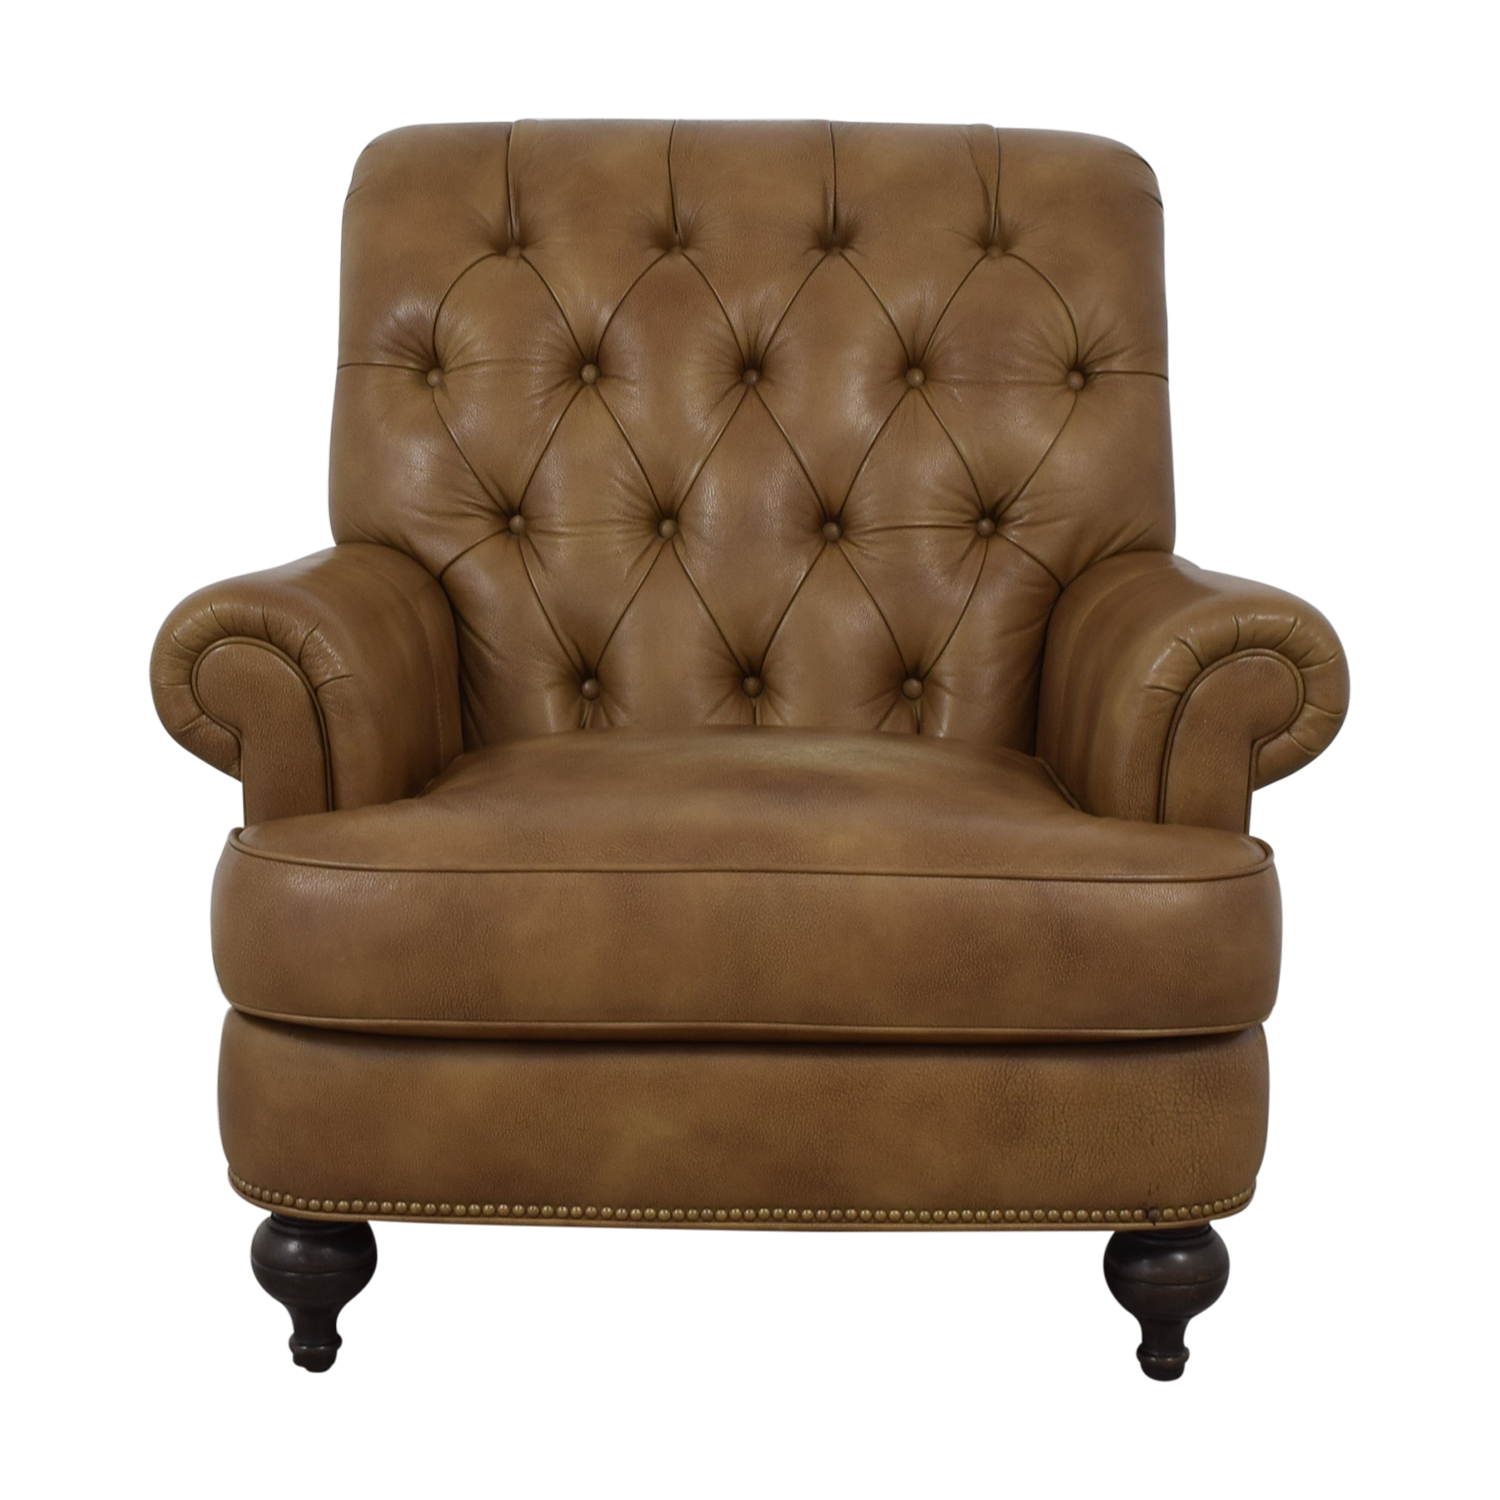 buy Ethan Allen Shawe Leather Chair Ethan Allen Sofas